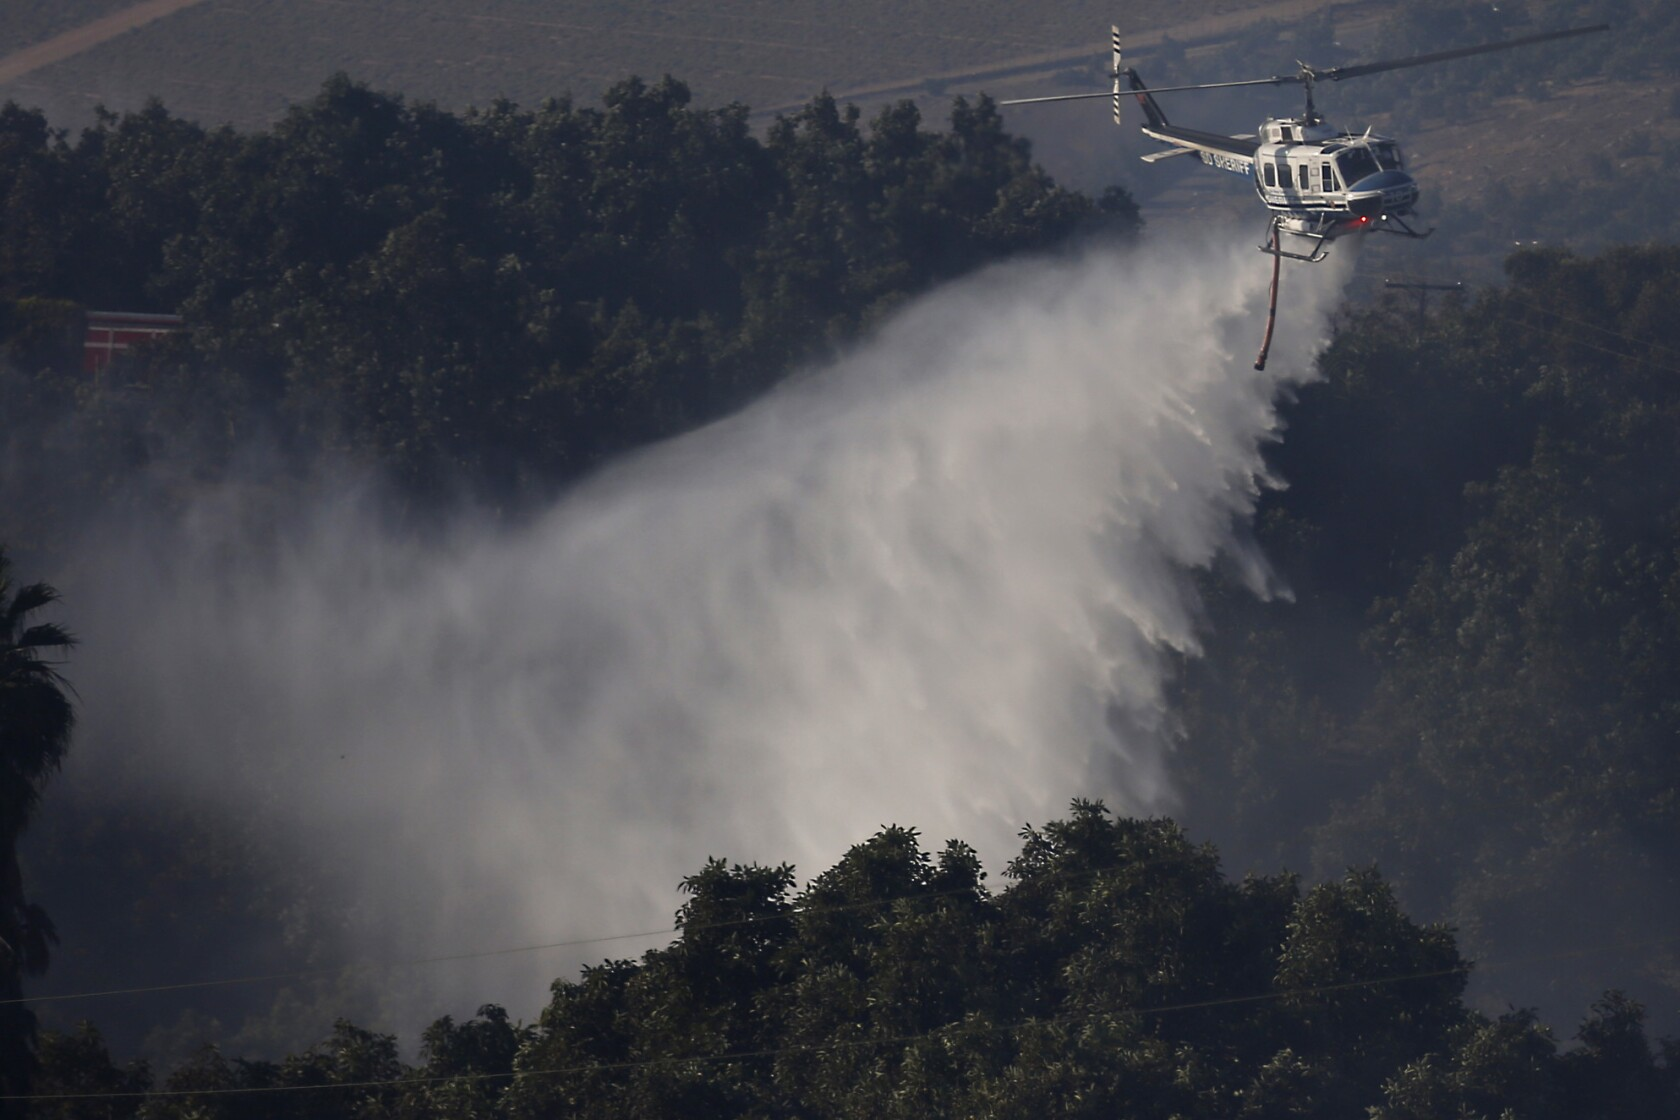 First fatality confirmed from Southern California wildfires - Los